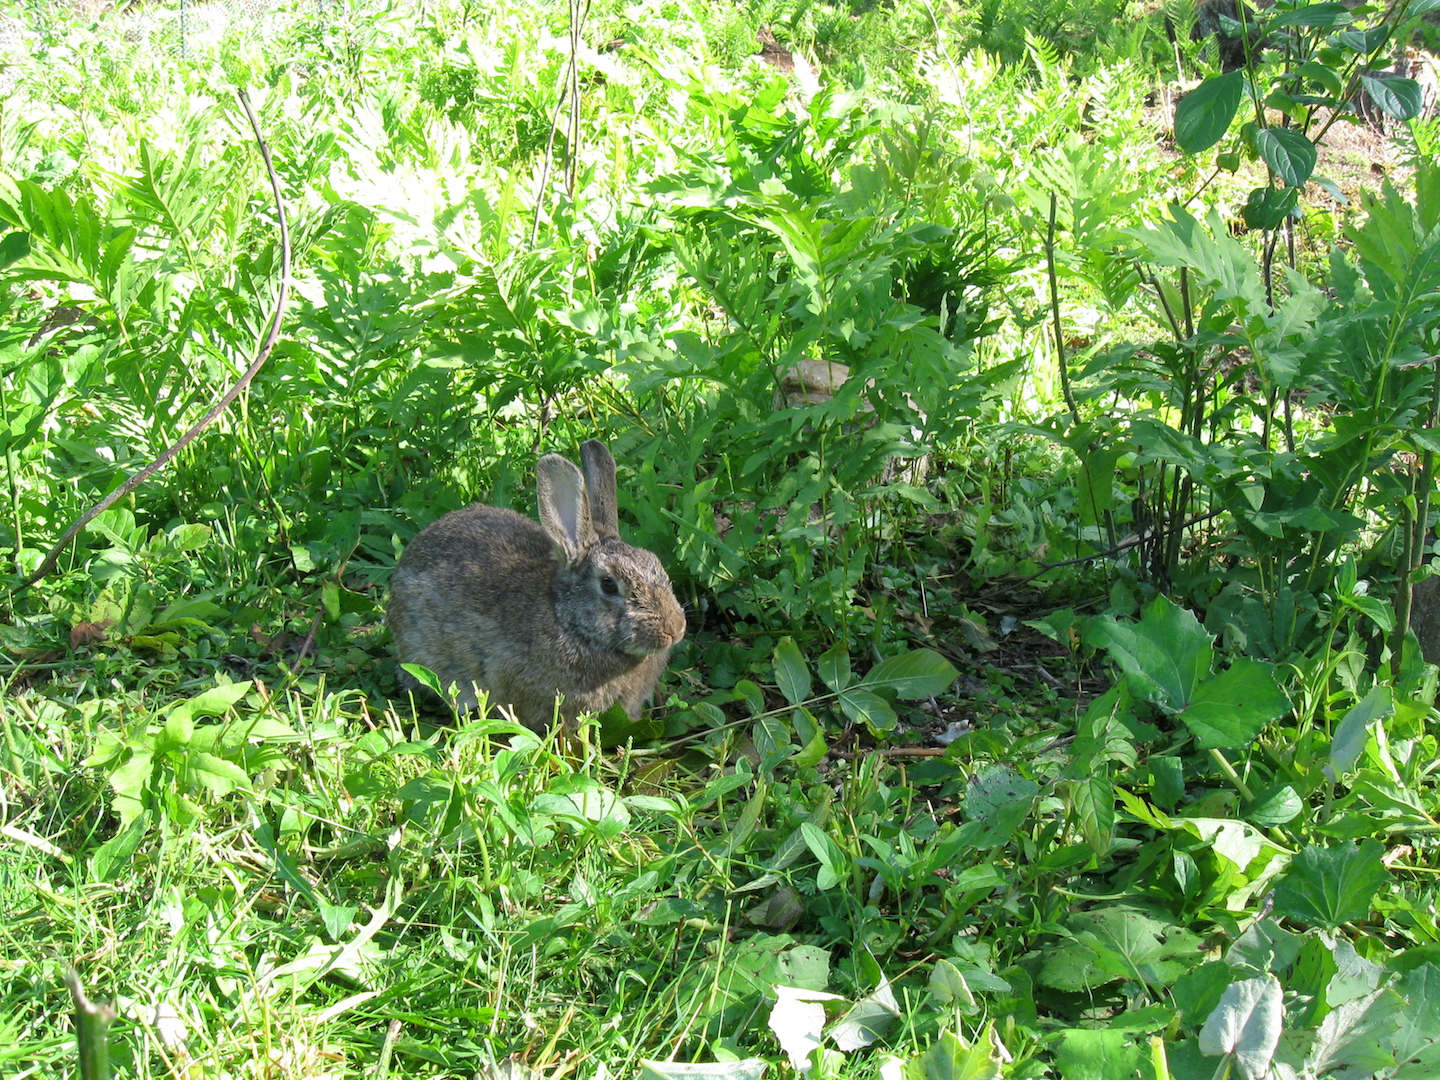 Rabbit on Pasture